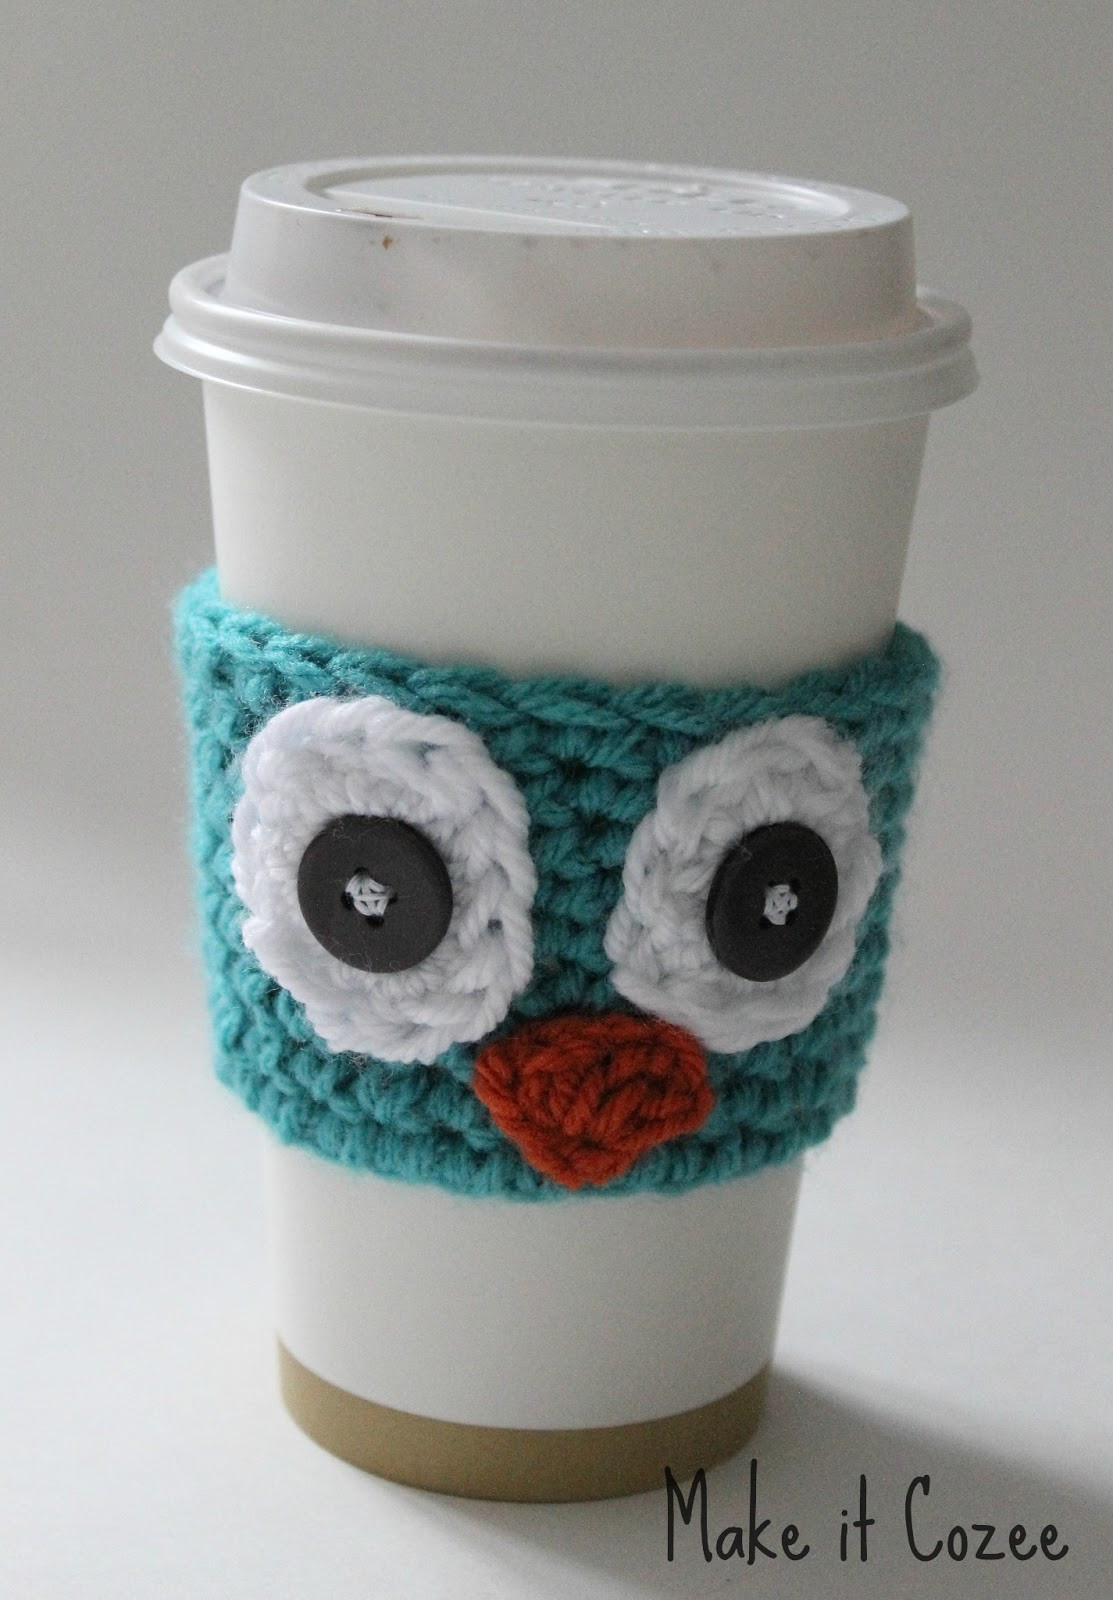 Crochet Coffee Cup Cozy Inspirational Make It Cozee Crochet Owl Coffee Cozy Of Crochet Coffee Cup Cozy Fresh Creativity Awaits Crochet Coffee Cozy Patterns Stitch